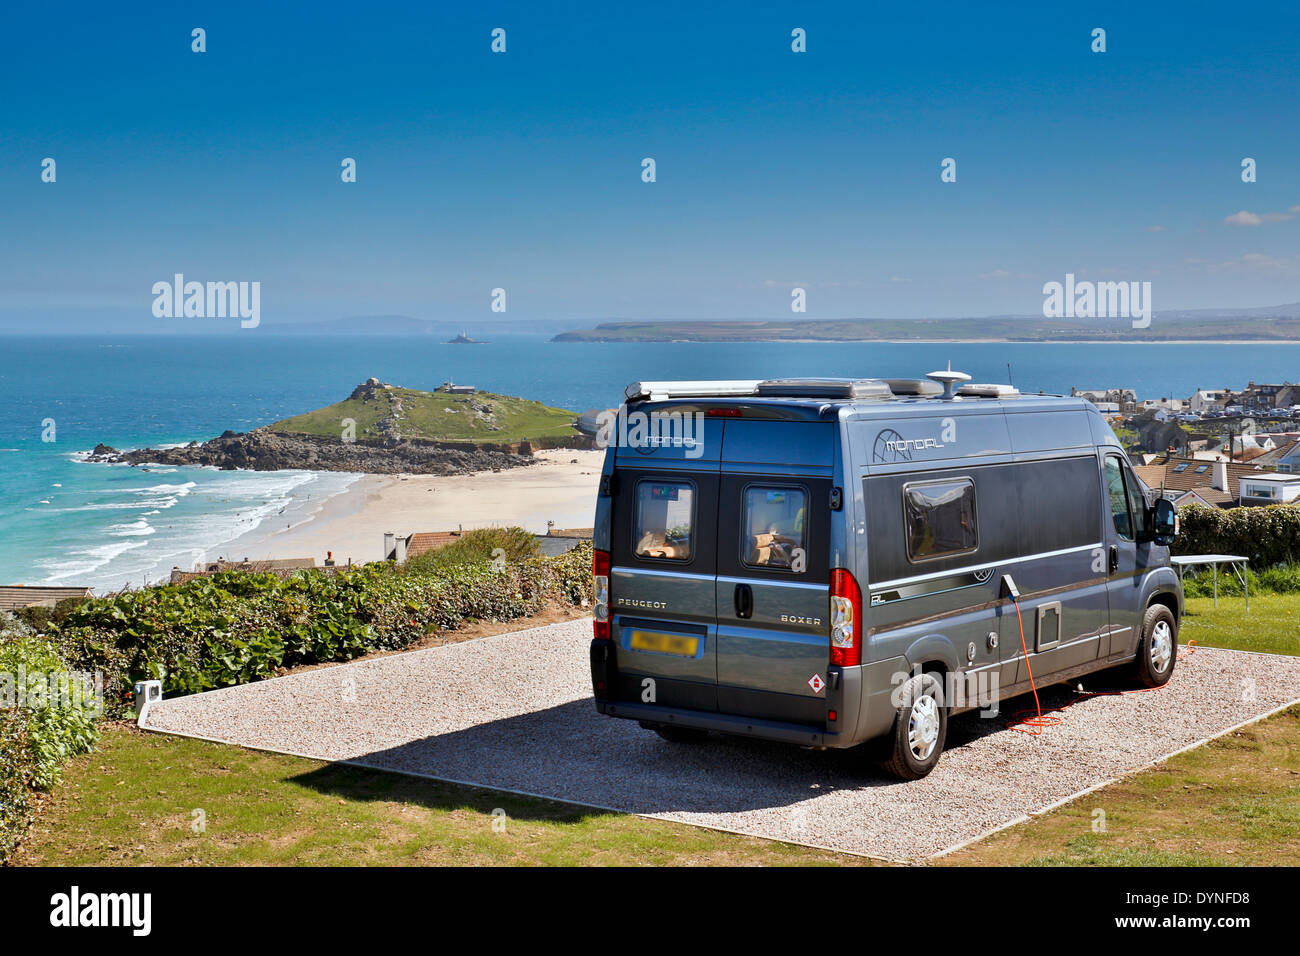 Ayr Campsite; St Ives; Looking Across St IVes Bay to Godrevy; Cornwall; UK - Stock Image